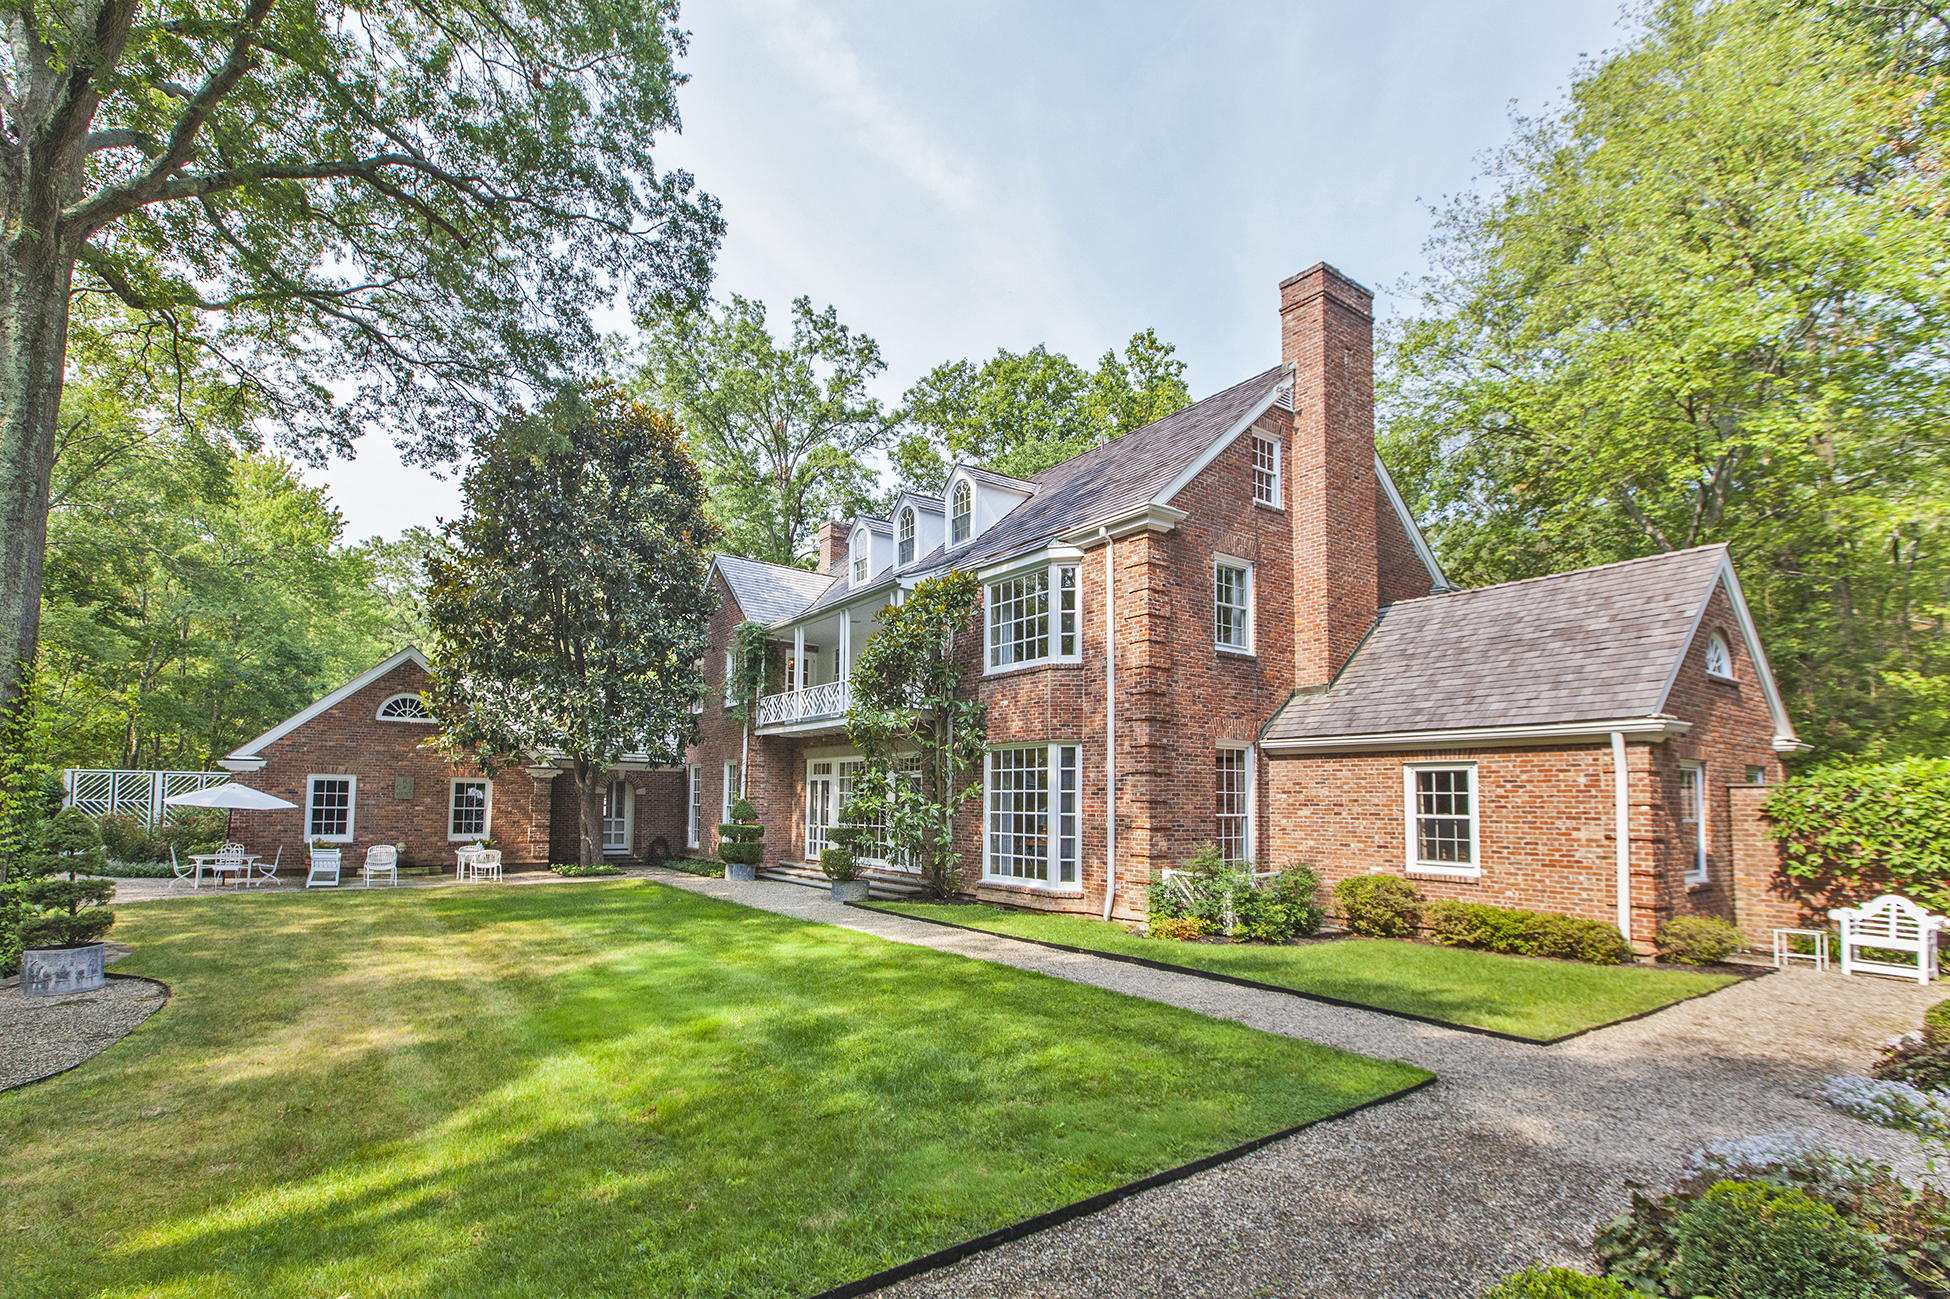 Single Family Home for Sale at A Southern Belle of a Home Near Downtown Princeton 1834 Stuart Road West Princeton, New Jersey, 08540 United States